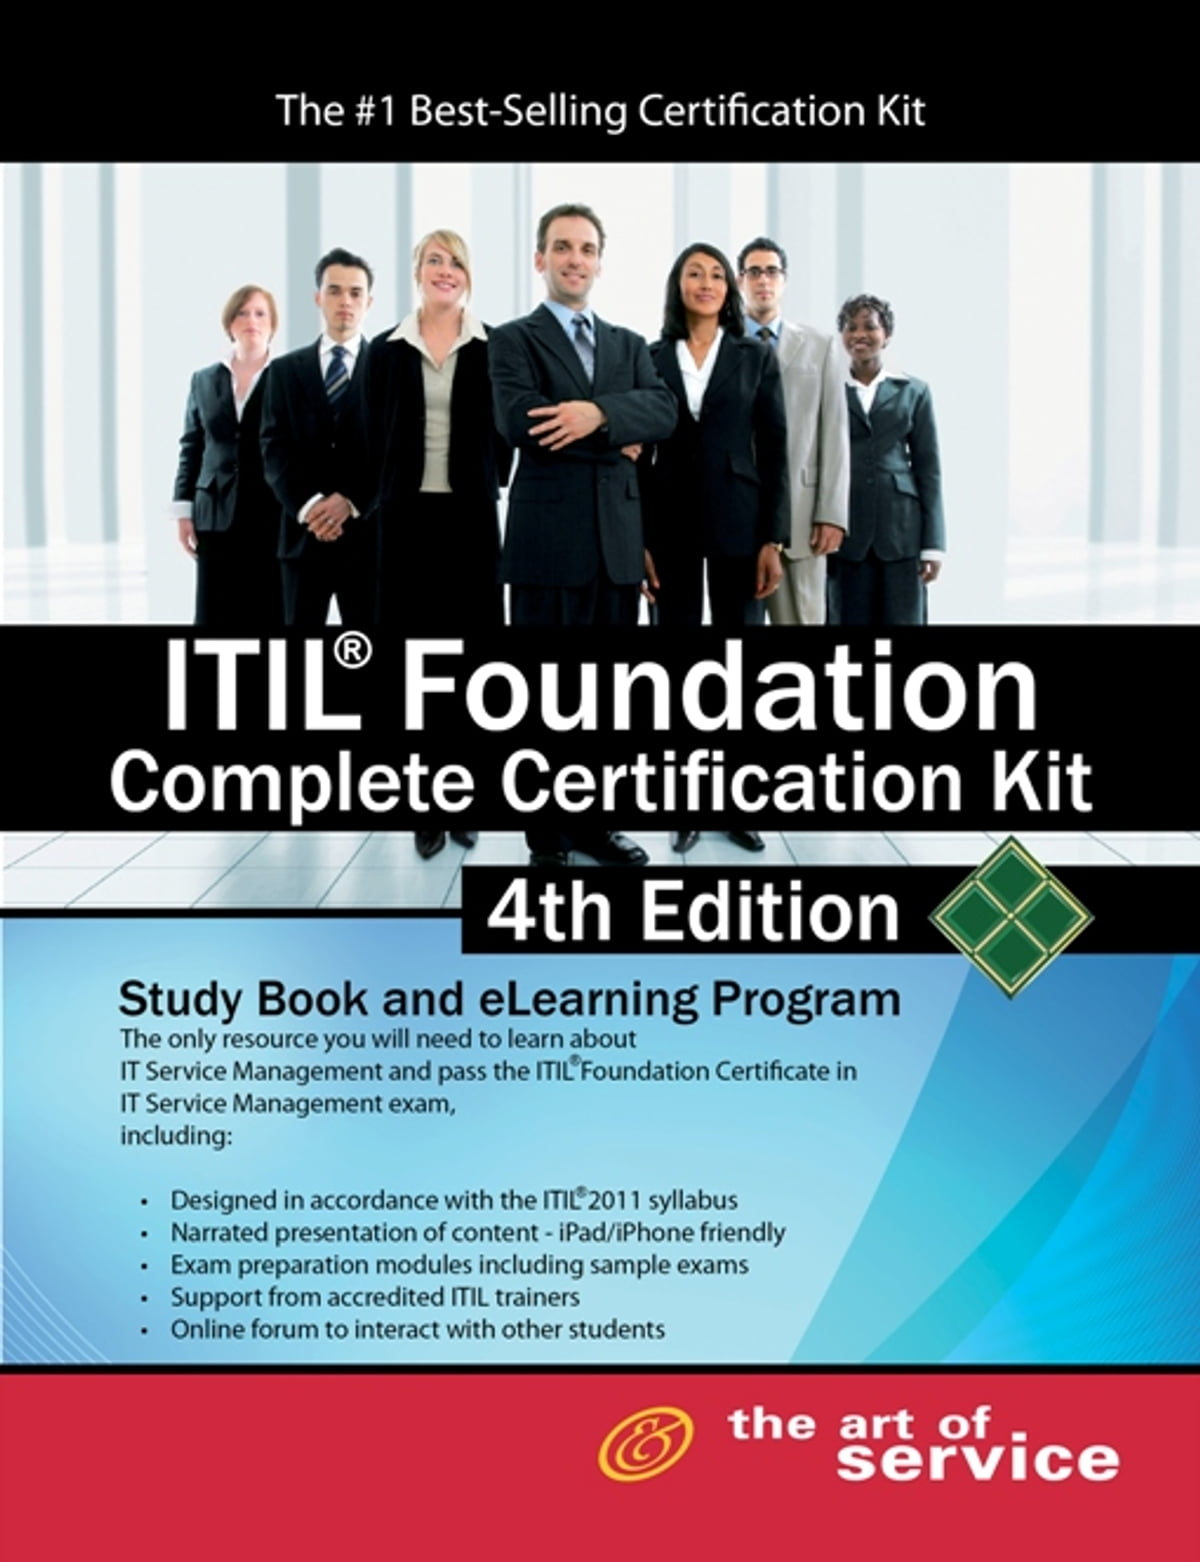 Itil Foundation Complete Certification Kit Fourth Edition Study Guide Book And Online Course Ebook By Ivanka Menken Rakuten Kobo